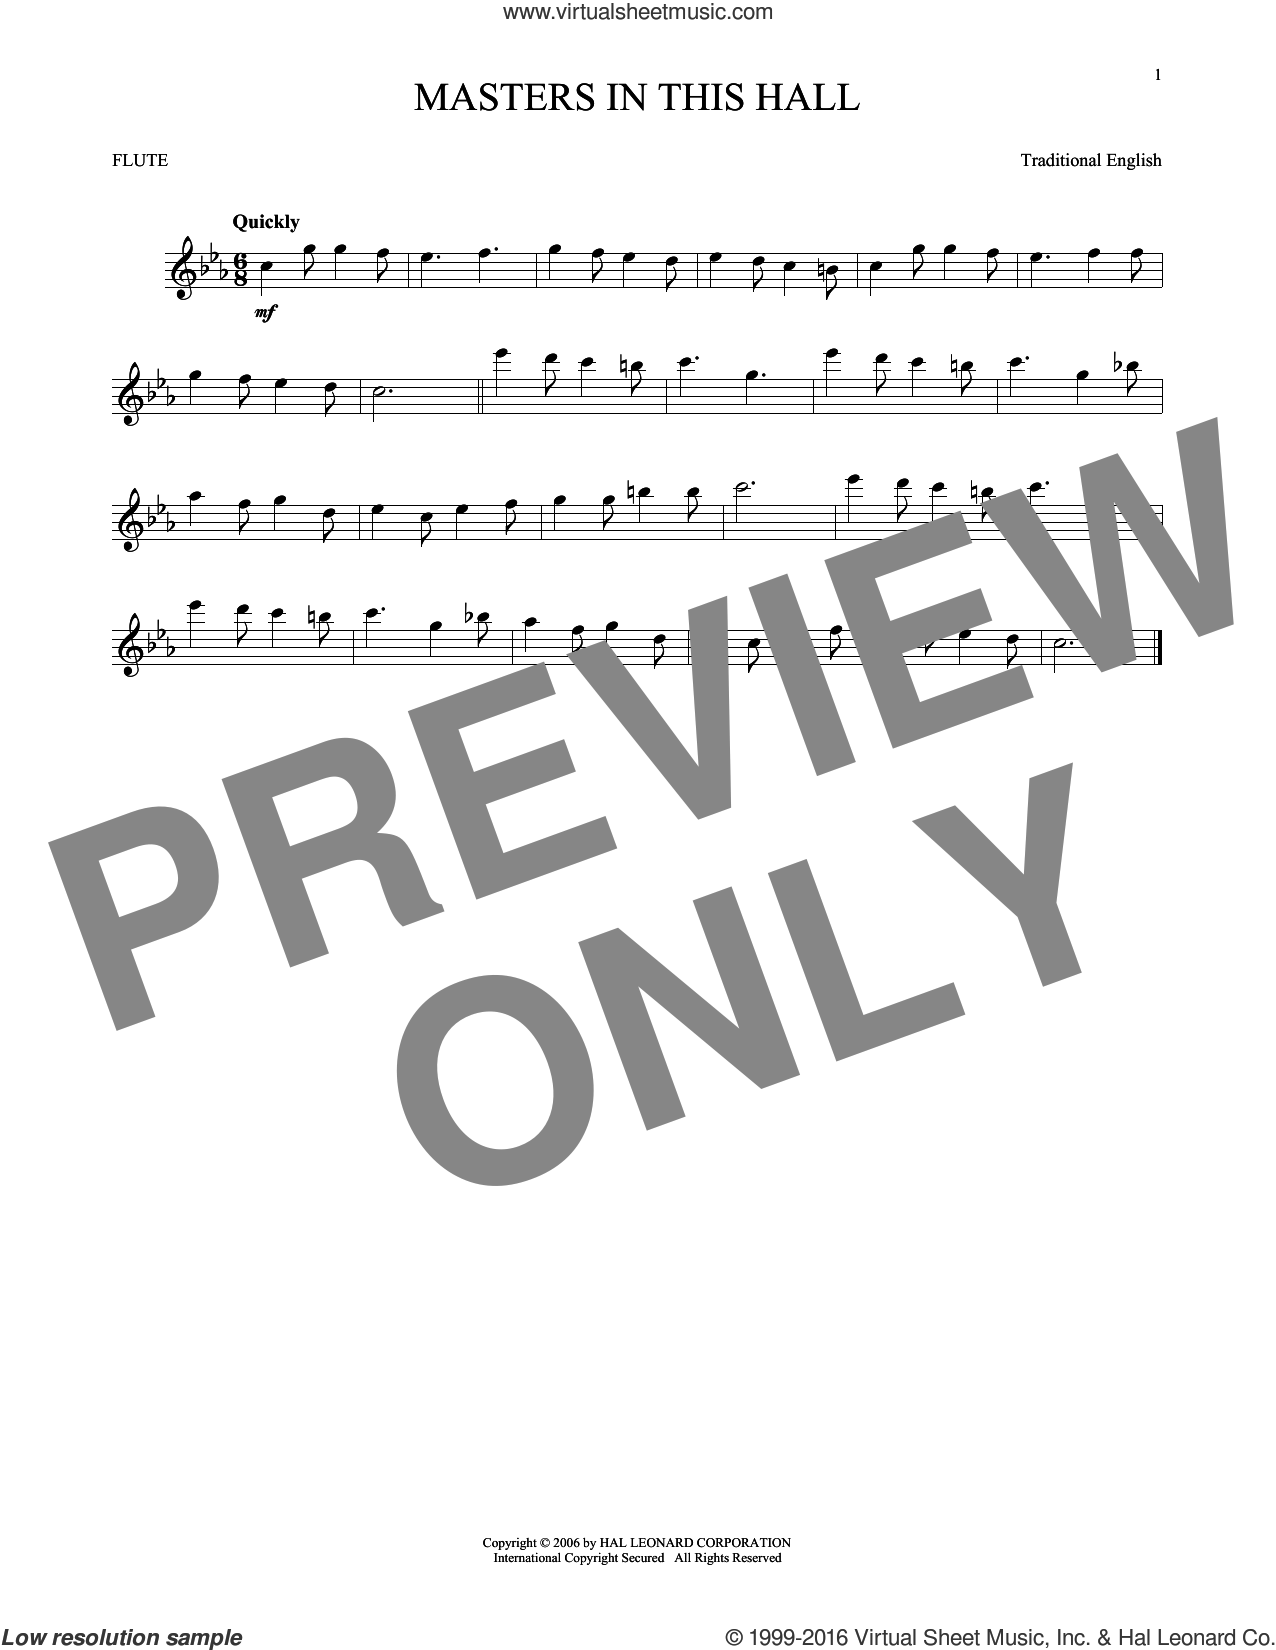 Masters In This Hall sheet music for flute solo